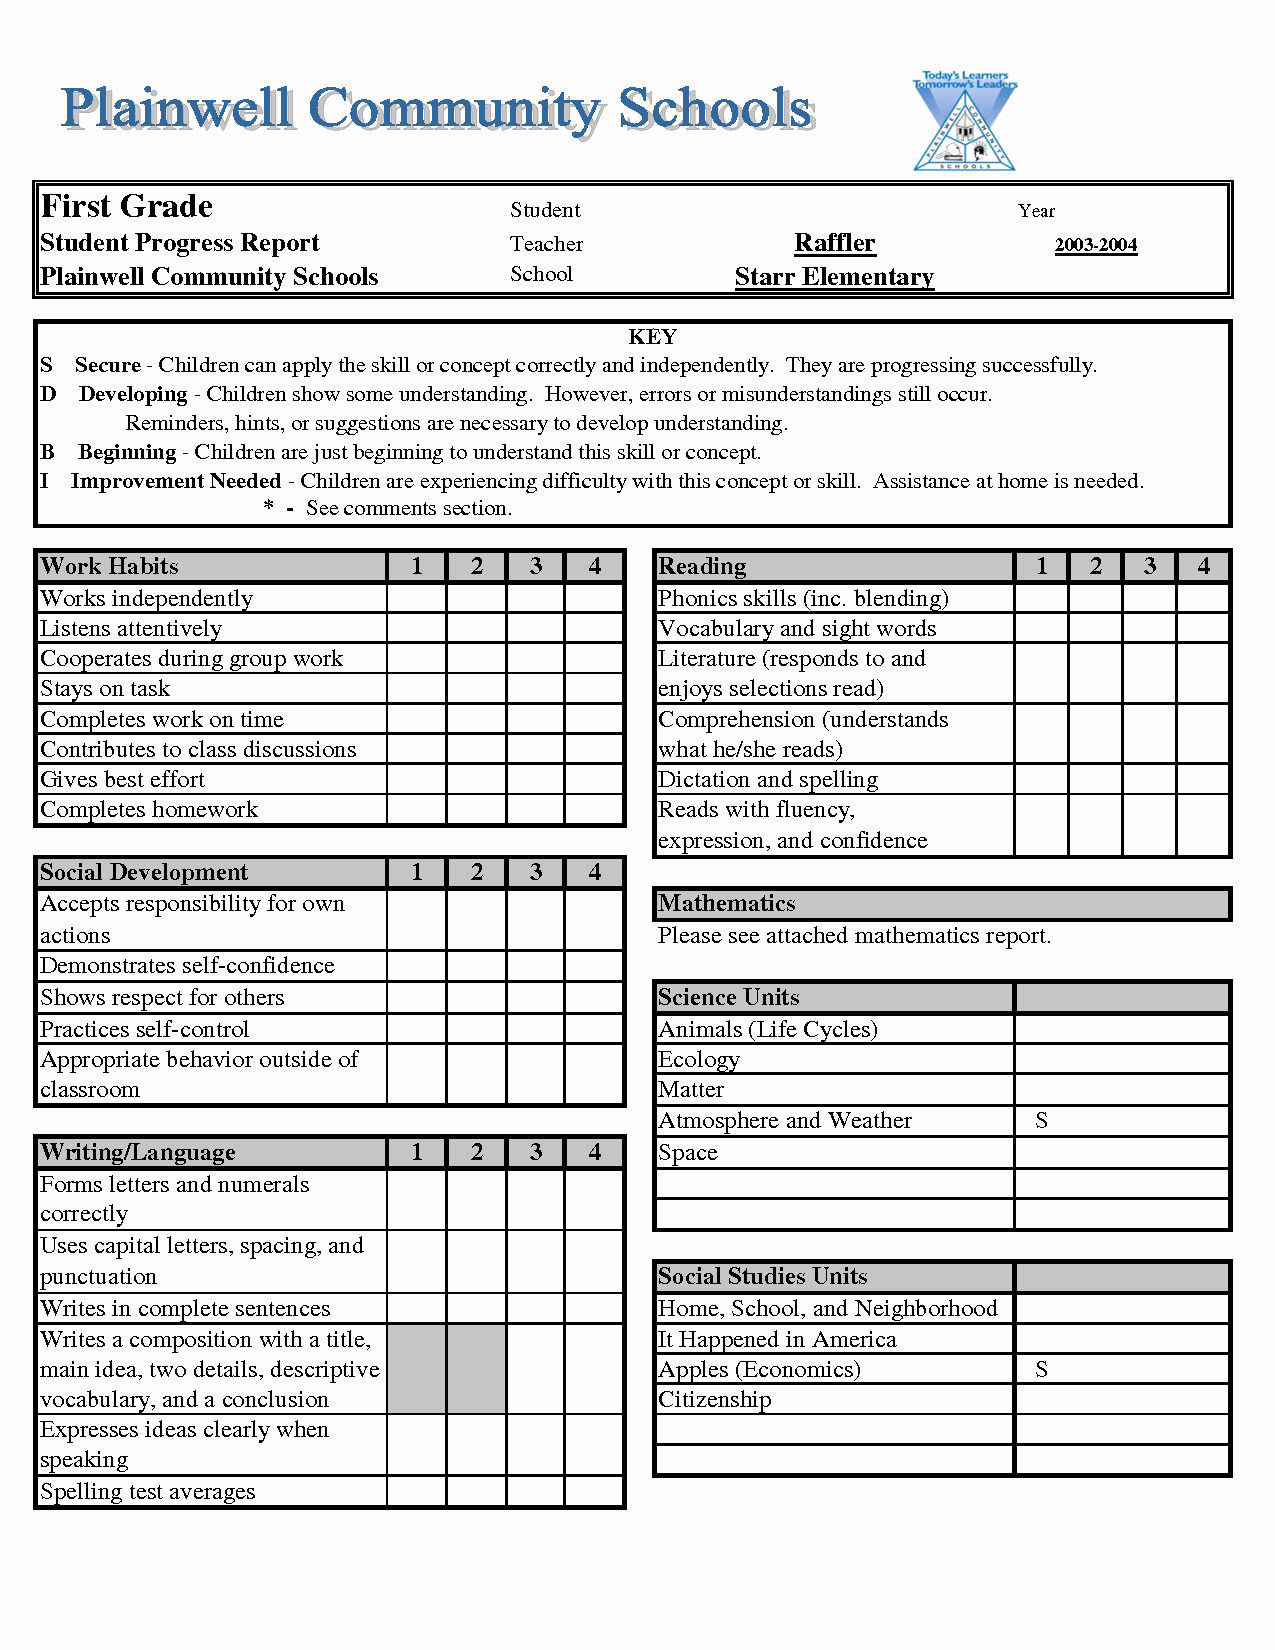 School Report Cards Templates New Report Card Template Excel Xls Download Legal Documents